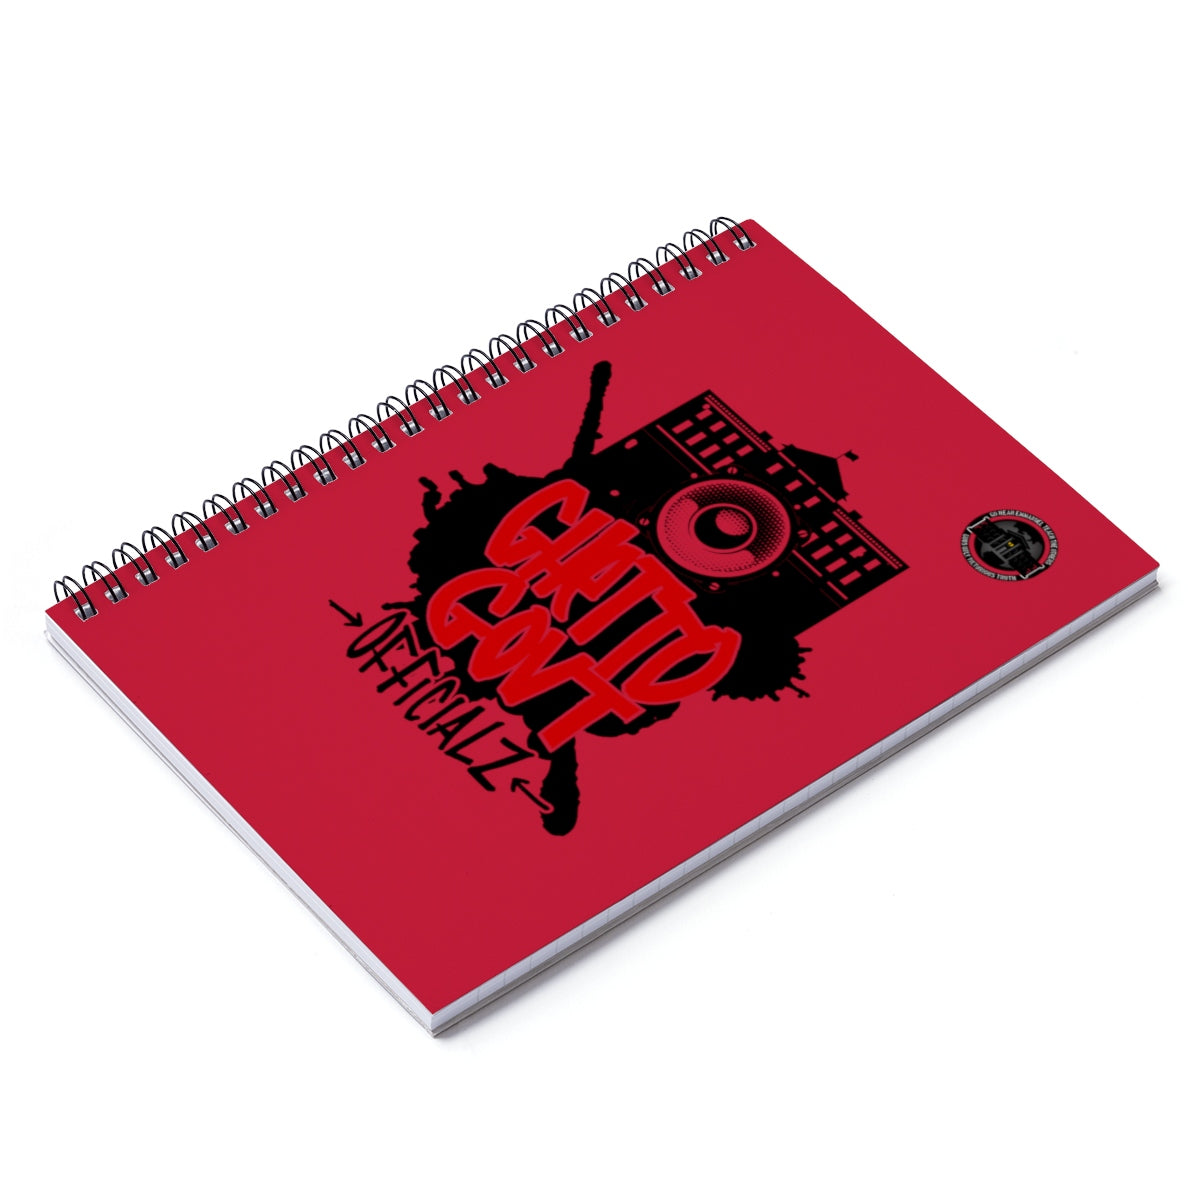 Ghetto Gov't Officialz Spiral Notebook - Ruled Line HeavenRazah - HellRazah Graphics by iHustle365